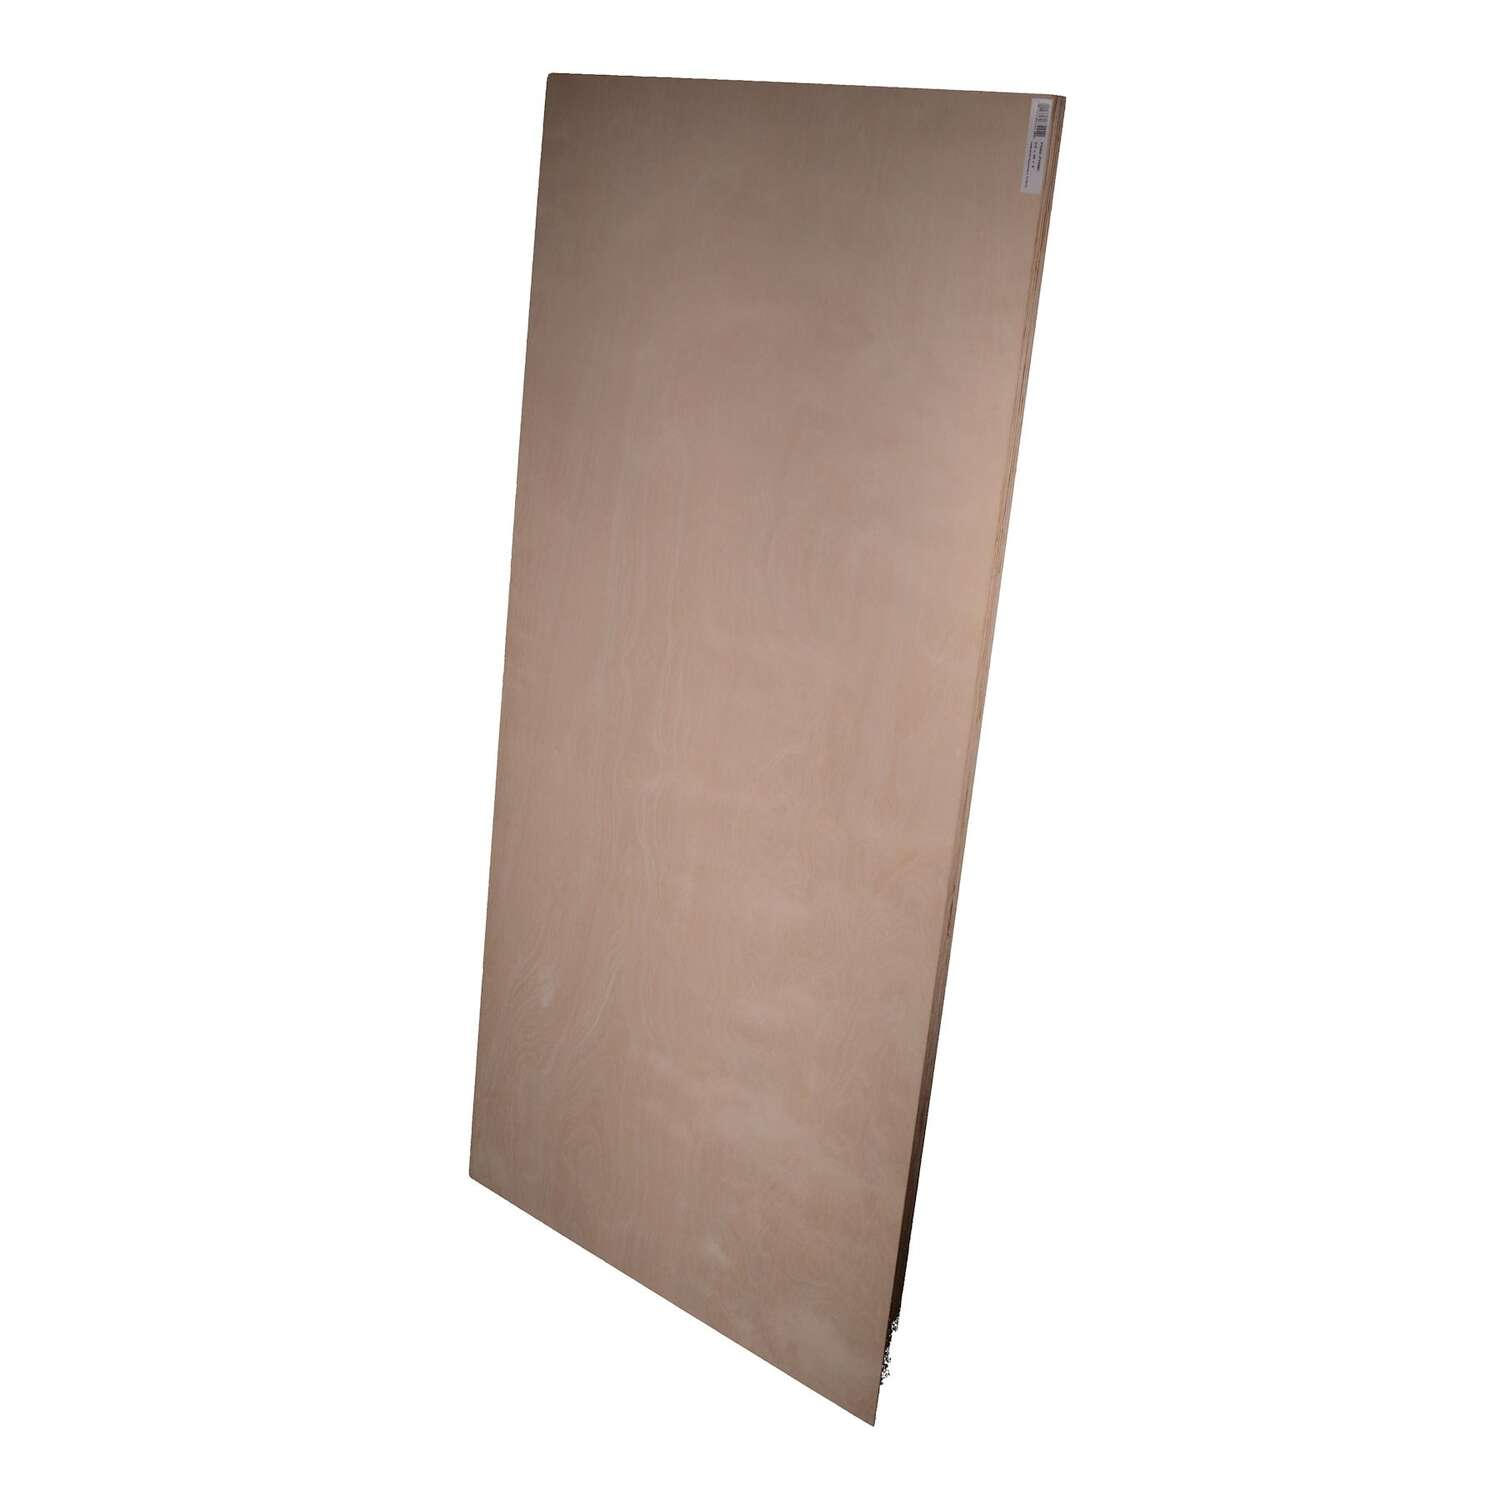 Alexandria Moulding  2 ft. W x 4 ft. L x 0.75 in.  Plywood